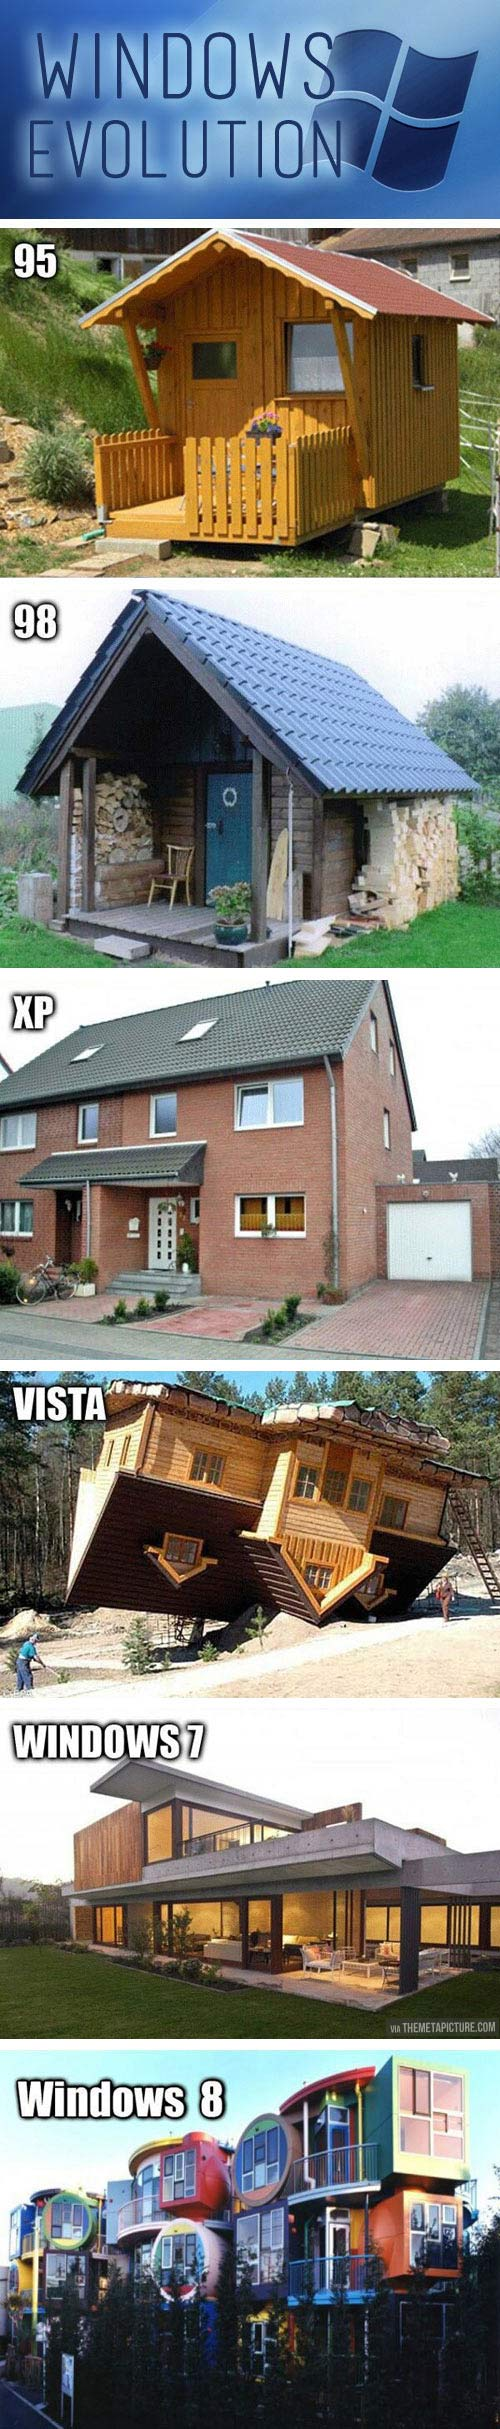 The evolution of Windows as told by houses…